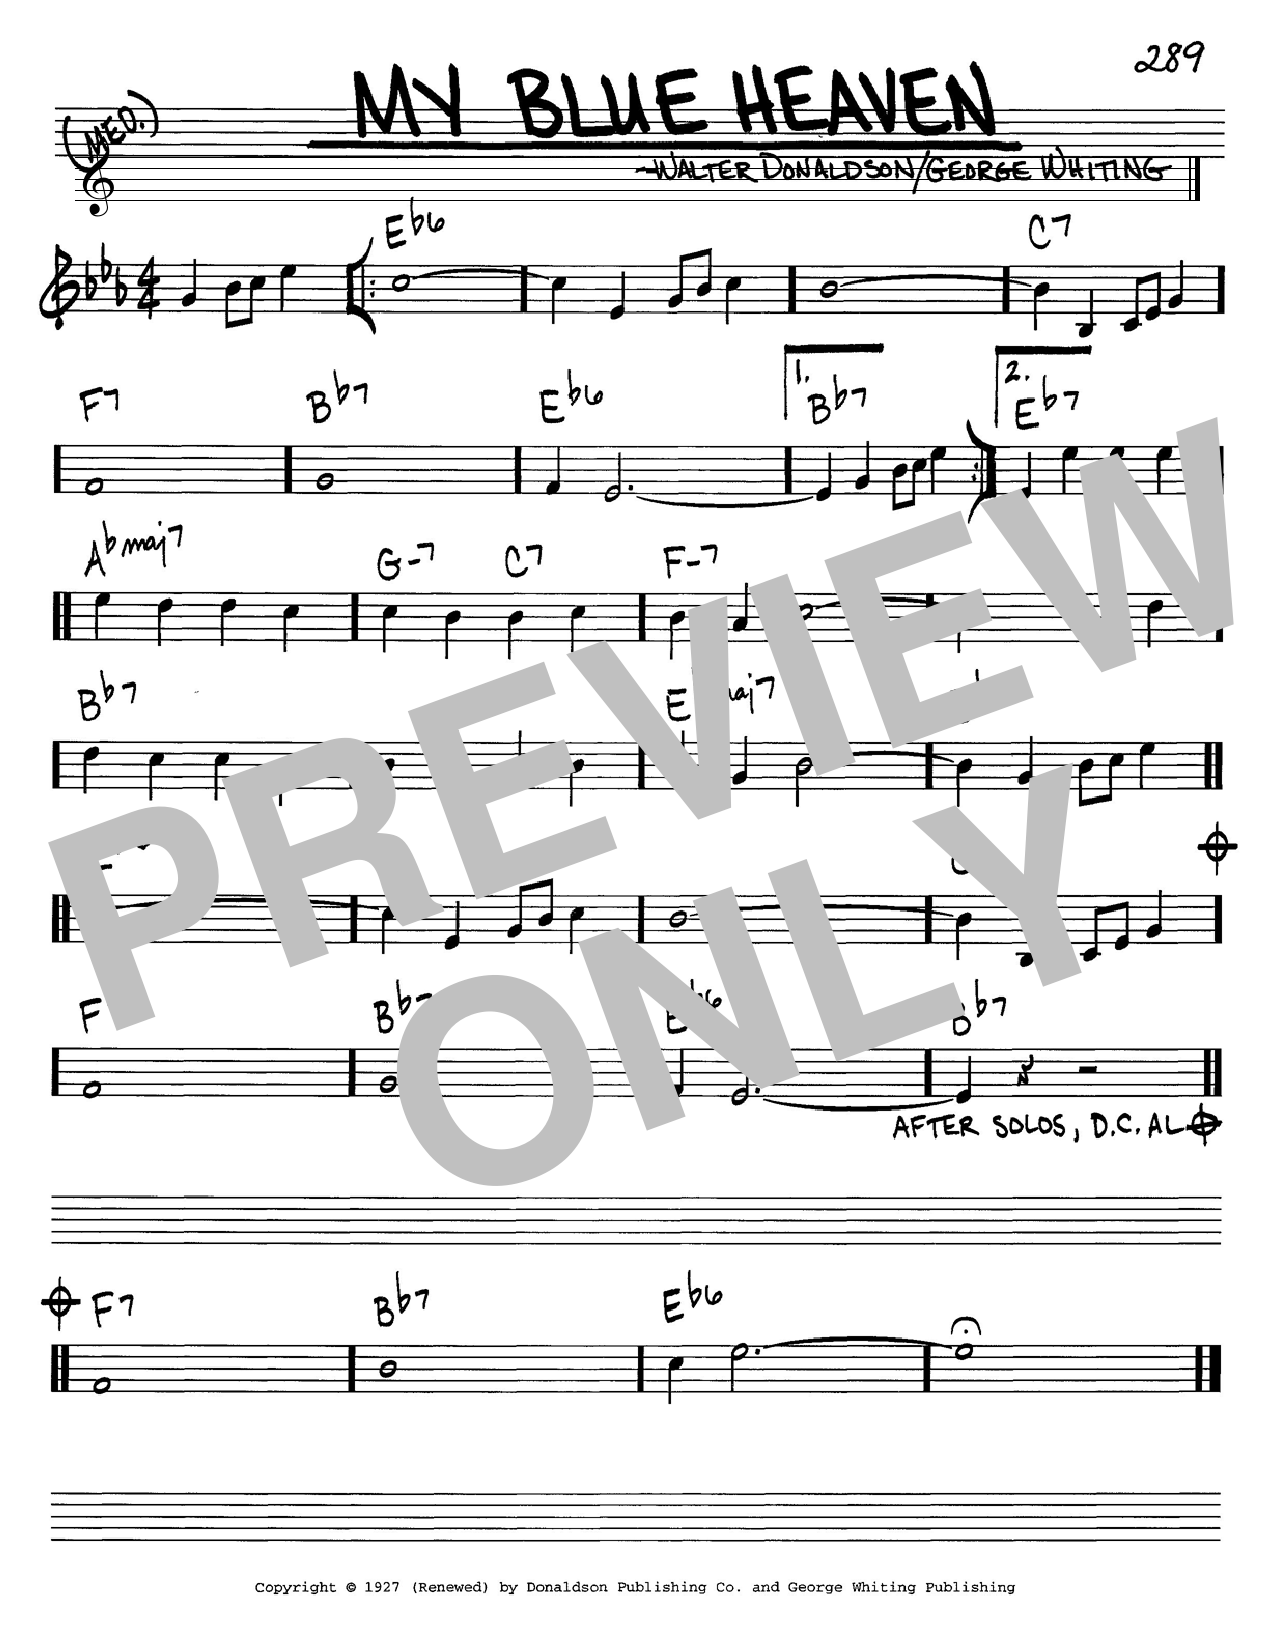 George Whiting My Blue Heaven sheet music notes and chords. Download Printable PDF.